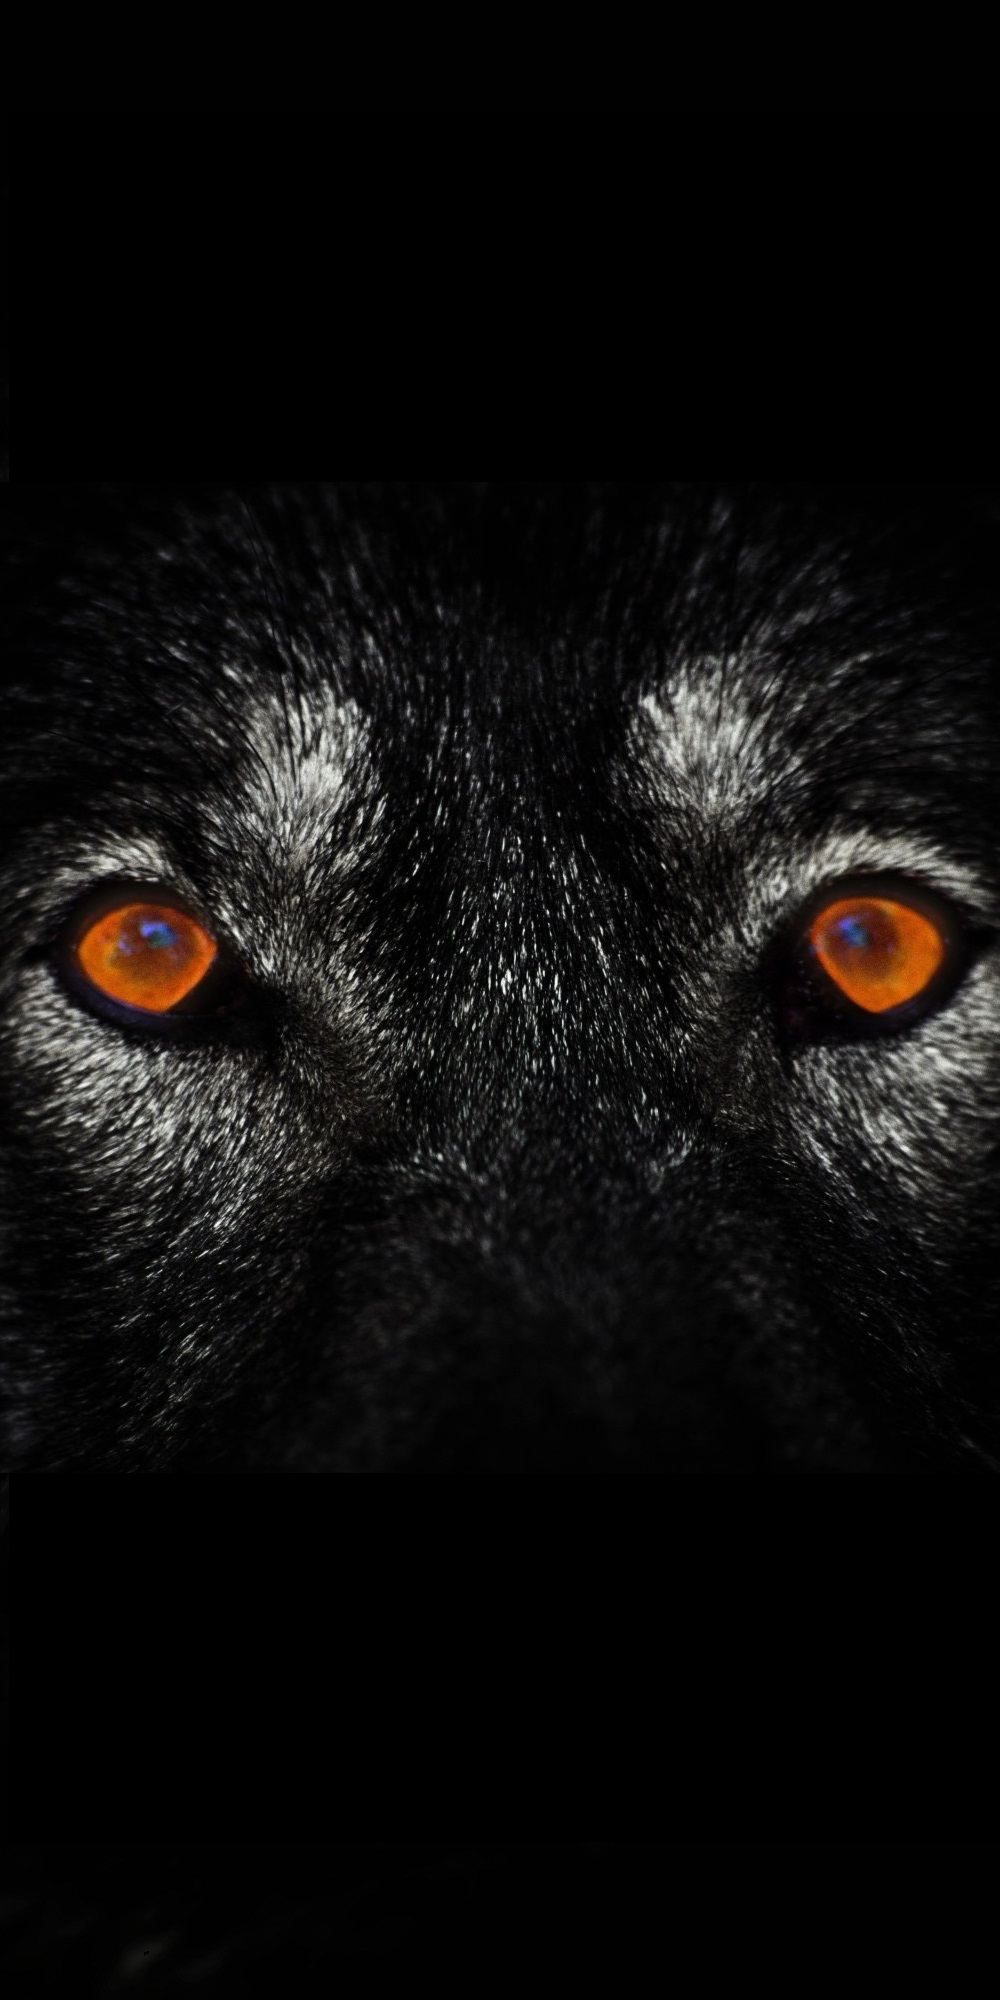 Wallpaper 4k For Phone Iphone X Wolf Eyes Dark Iphone Wallpaper 3d Iphone Wallpaper